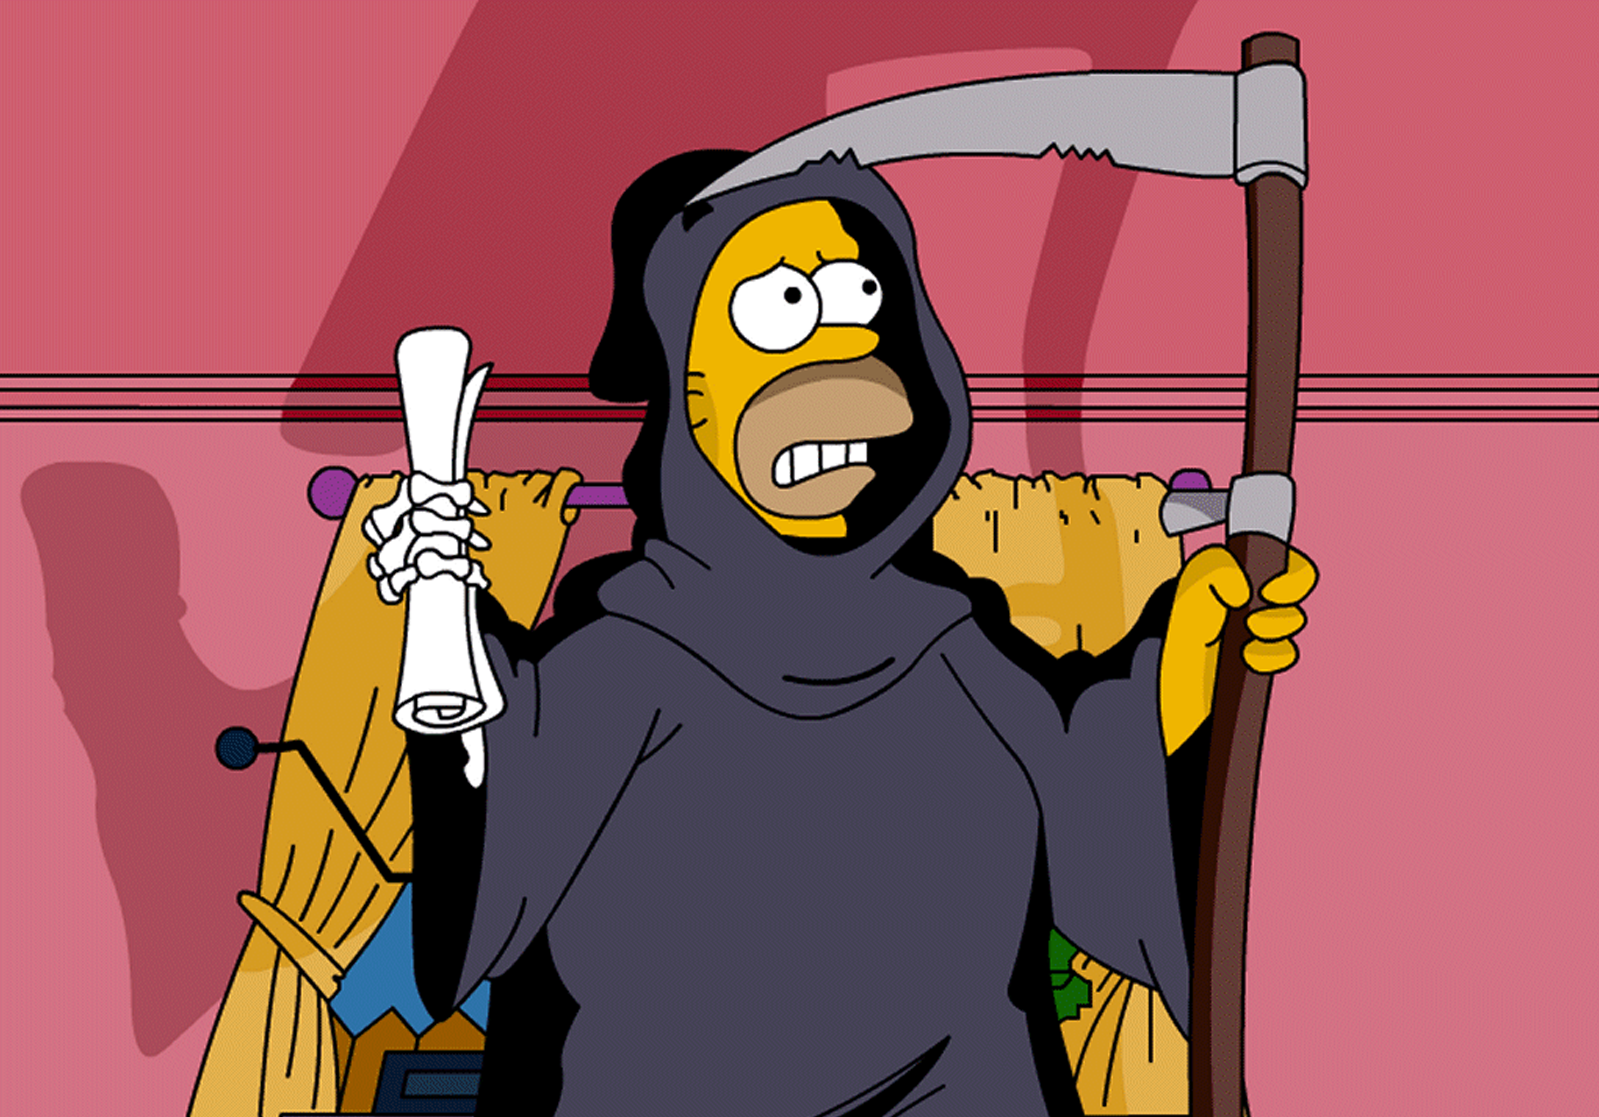 Homer en Faucheuse / source : cartoongraphics.blogspot.com